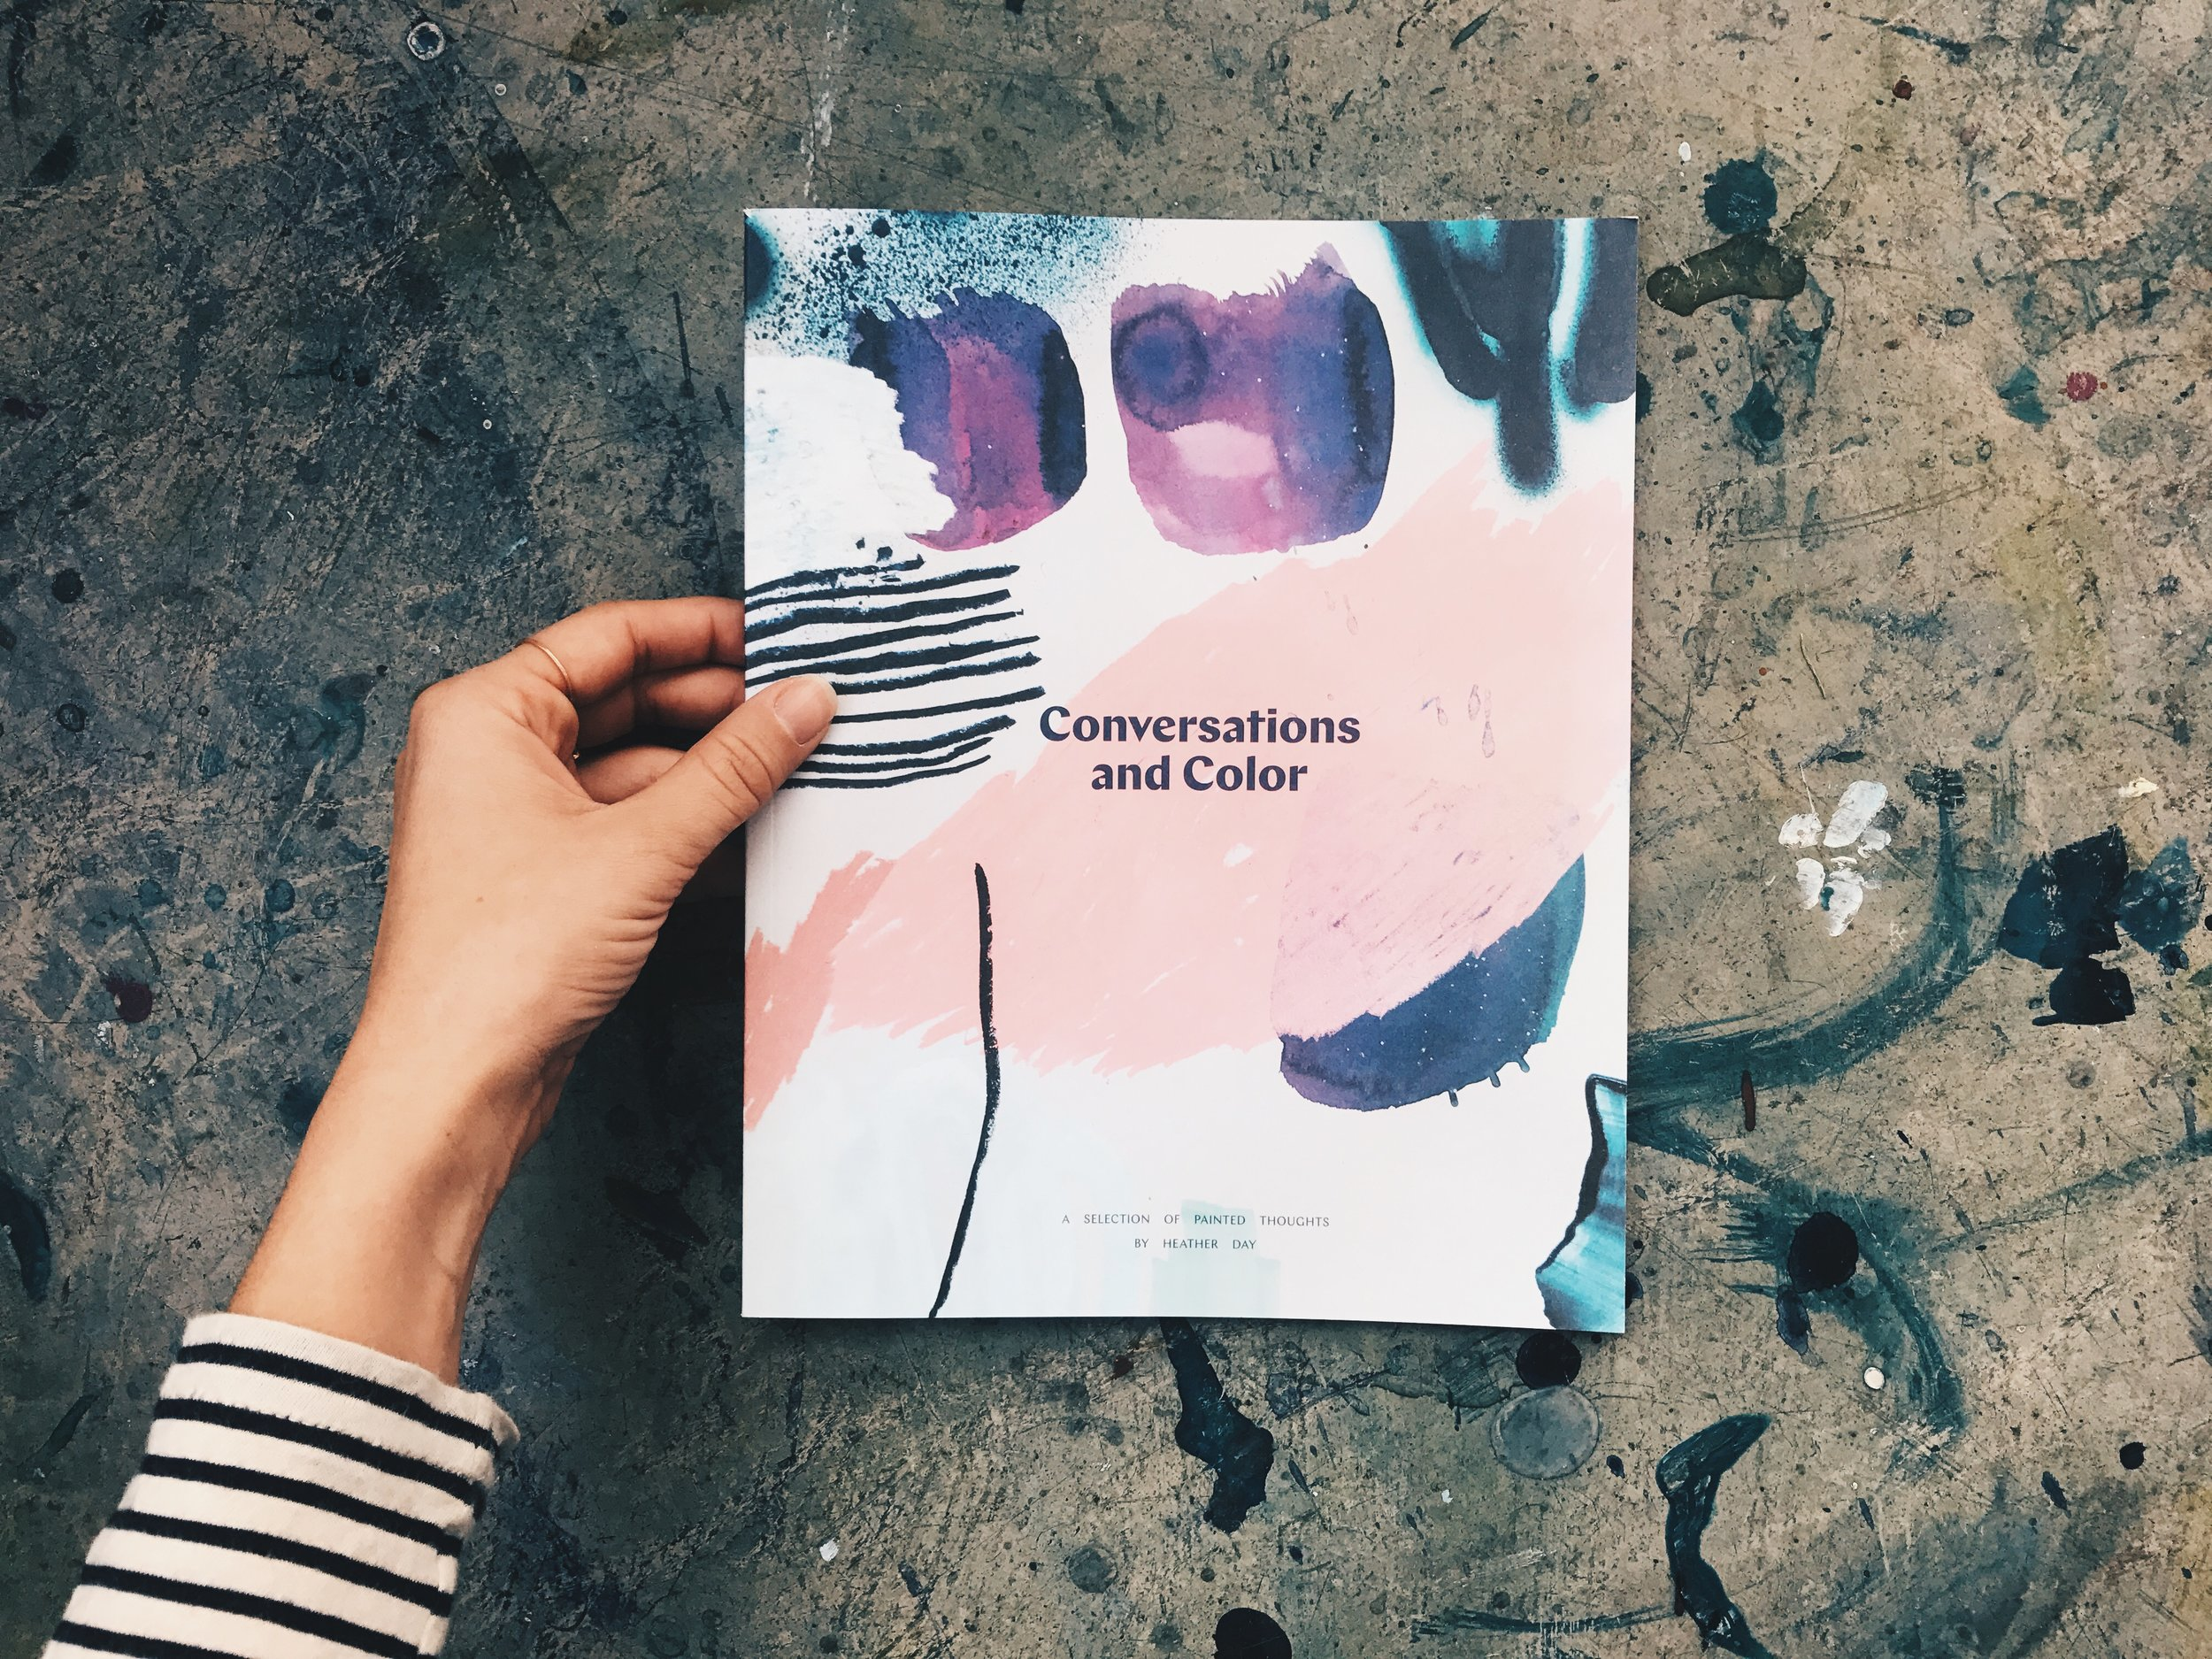 Conversations and Color Catalog by Heather Day